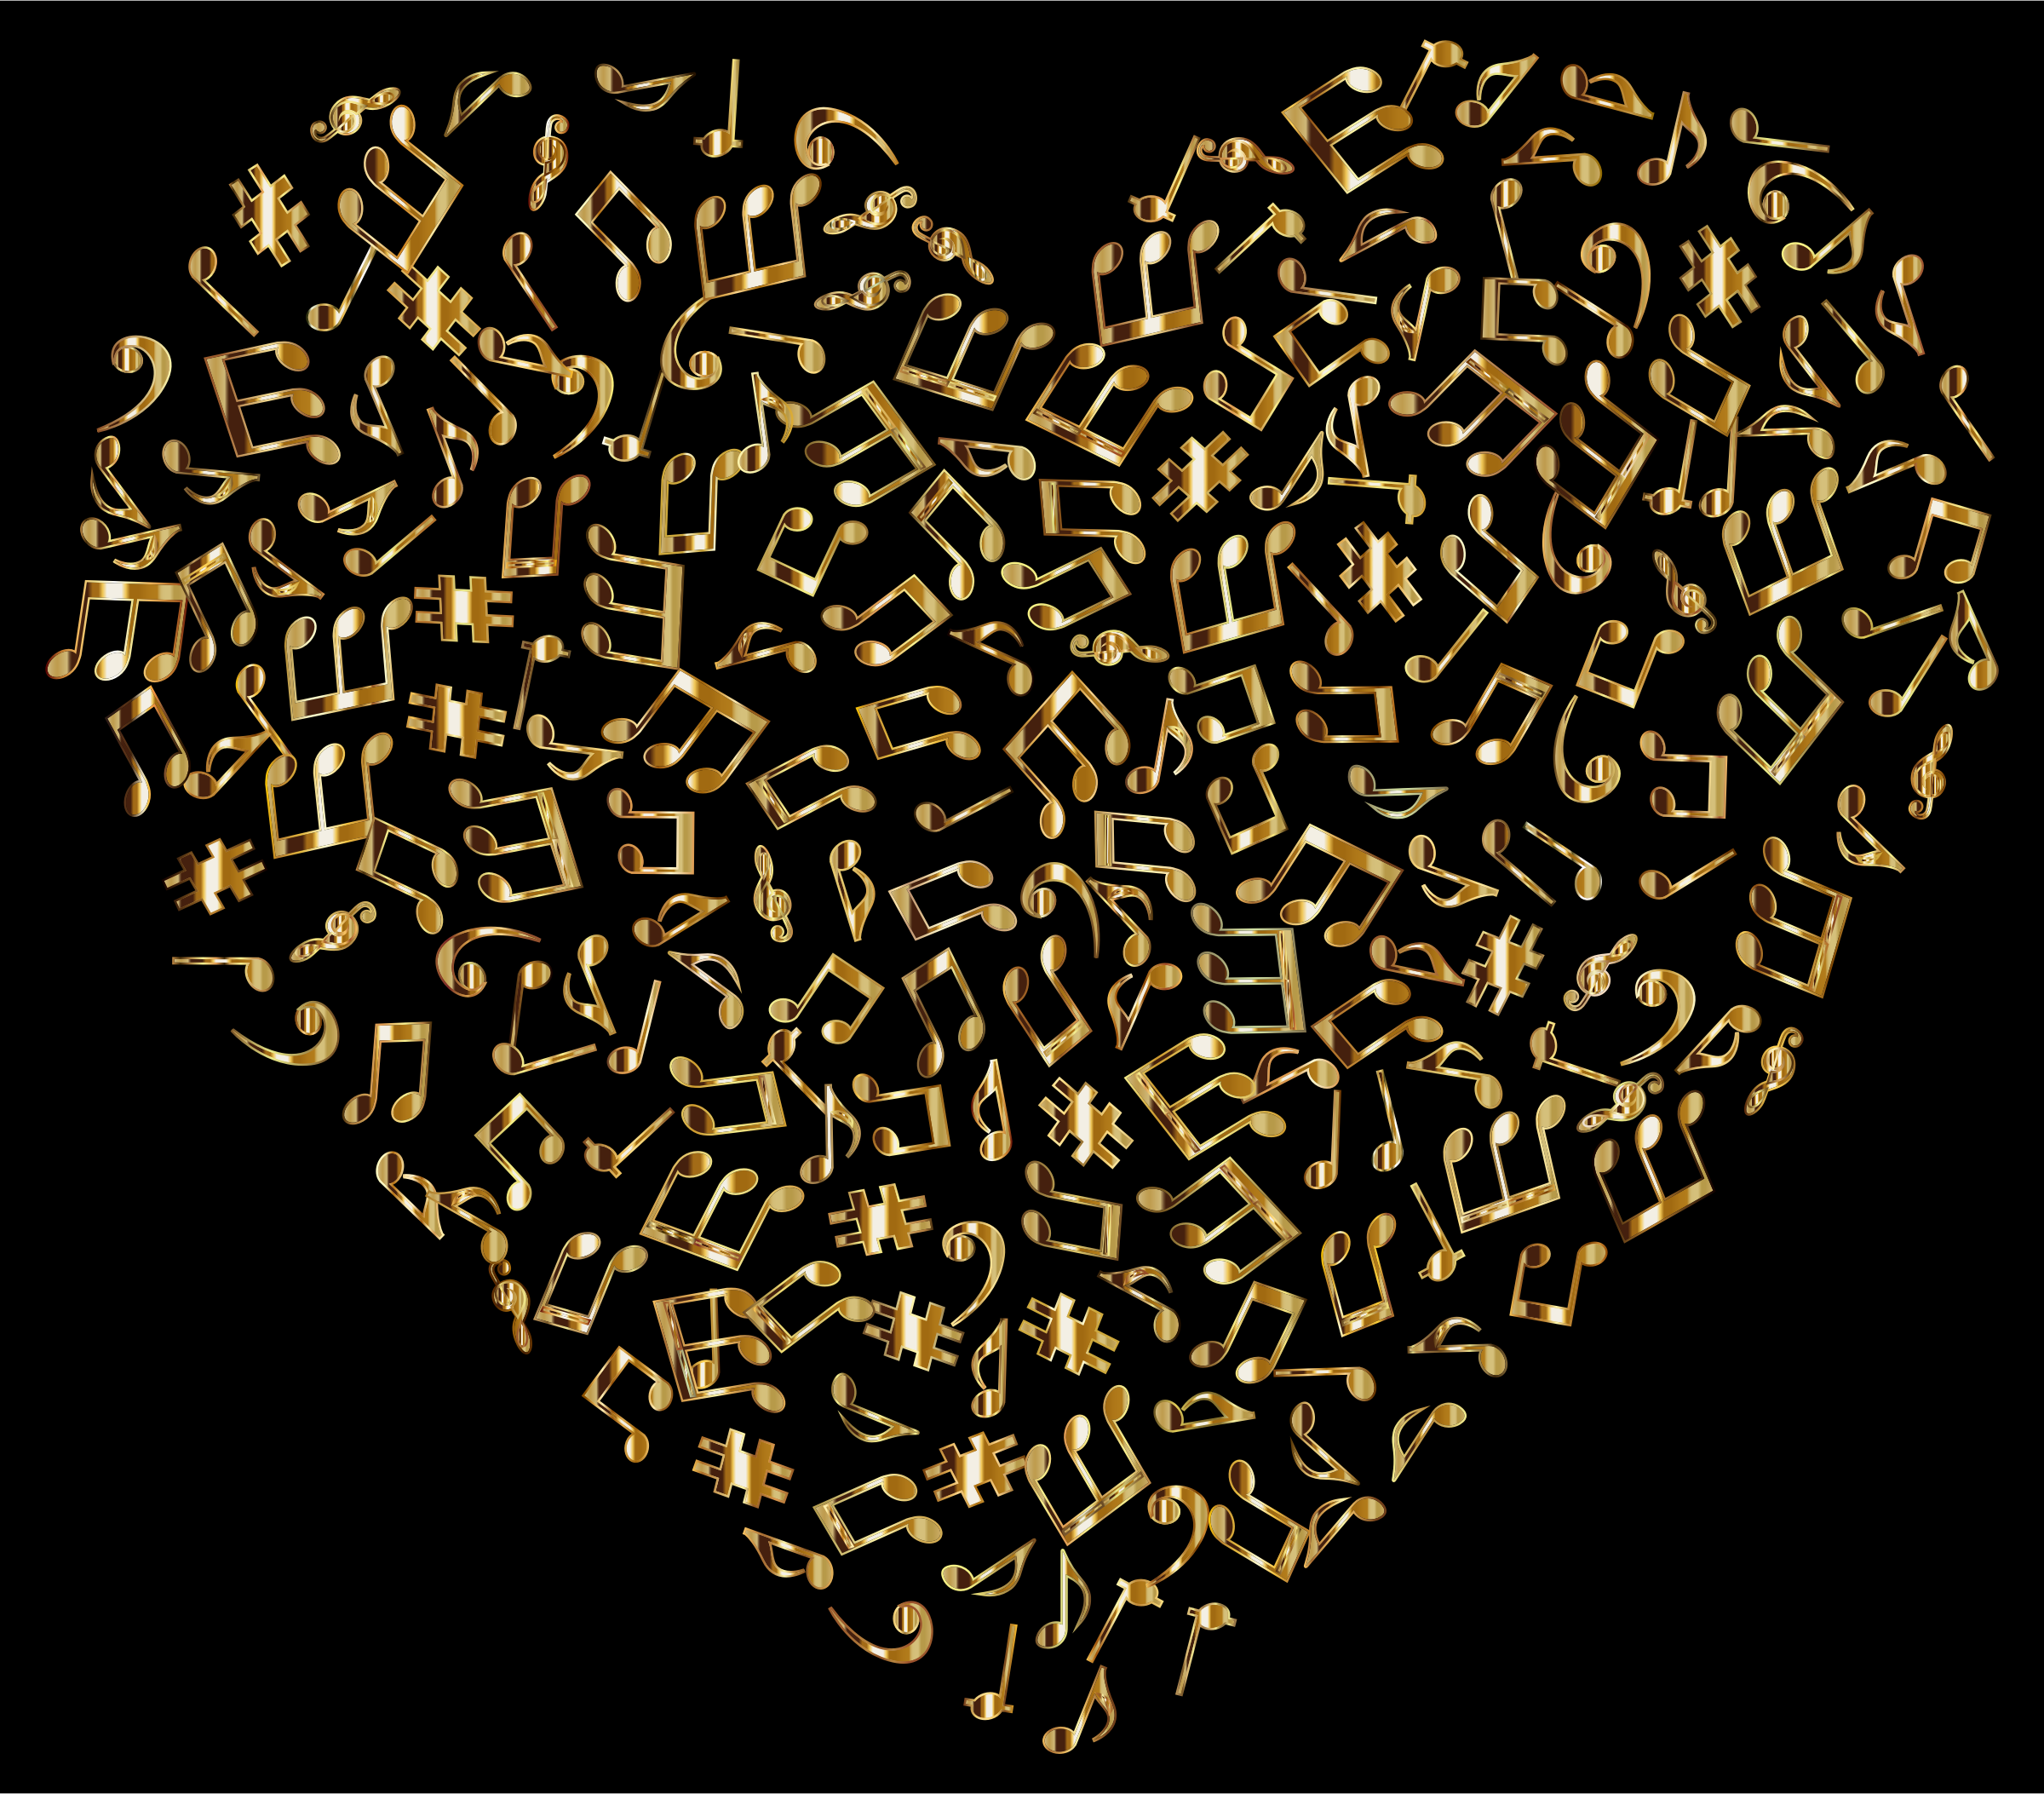 Gold Musical Heart 4 2 by GDJ